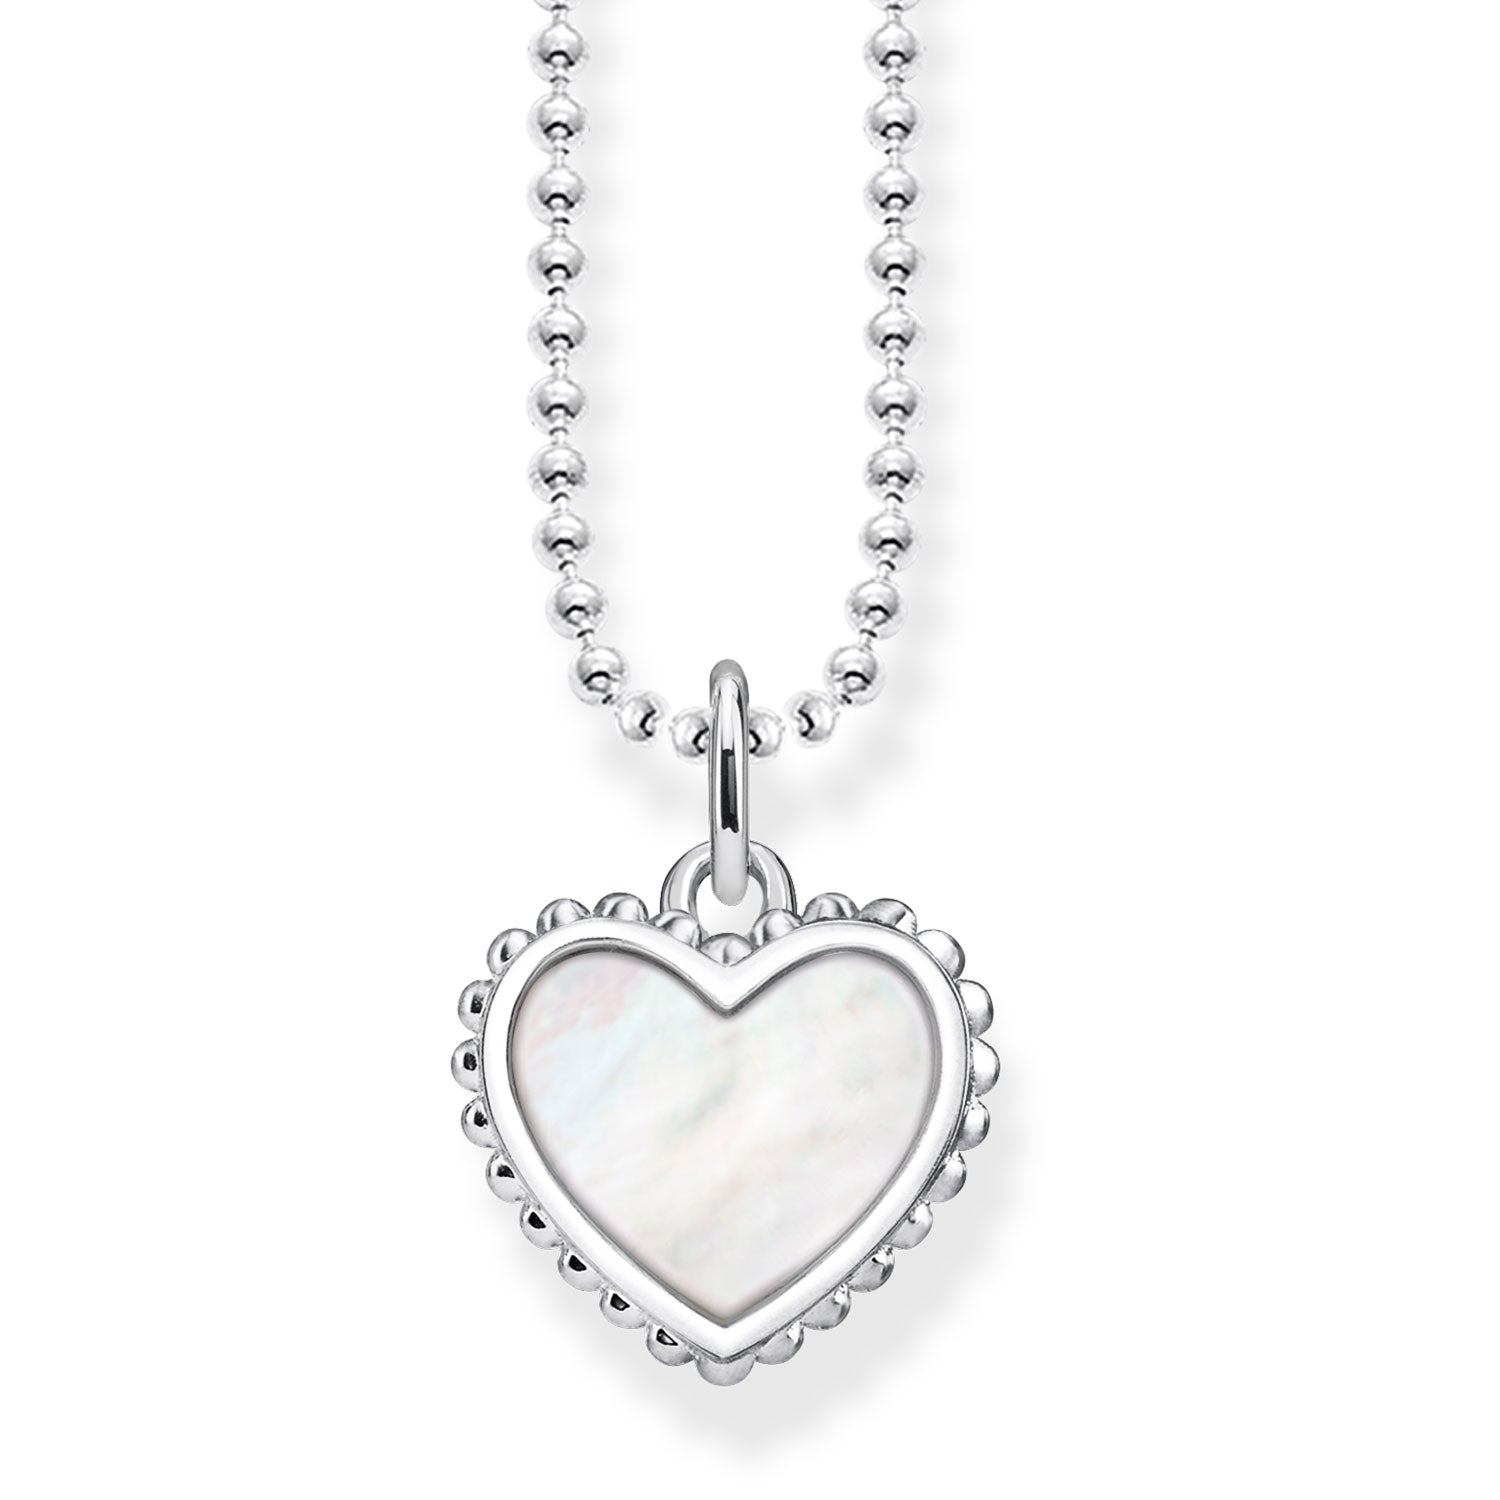 Thomas Sabo Silver & Mother of Pearl Heart Necklace